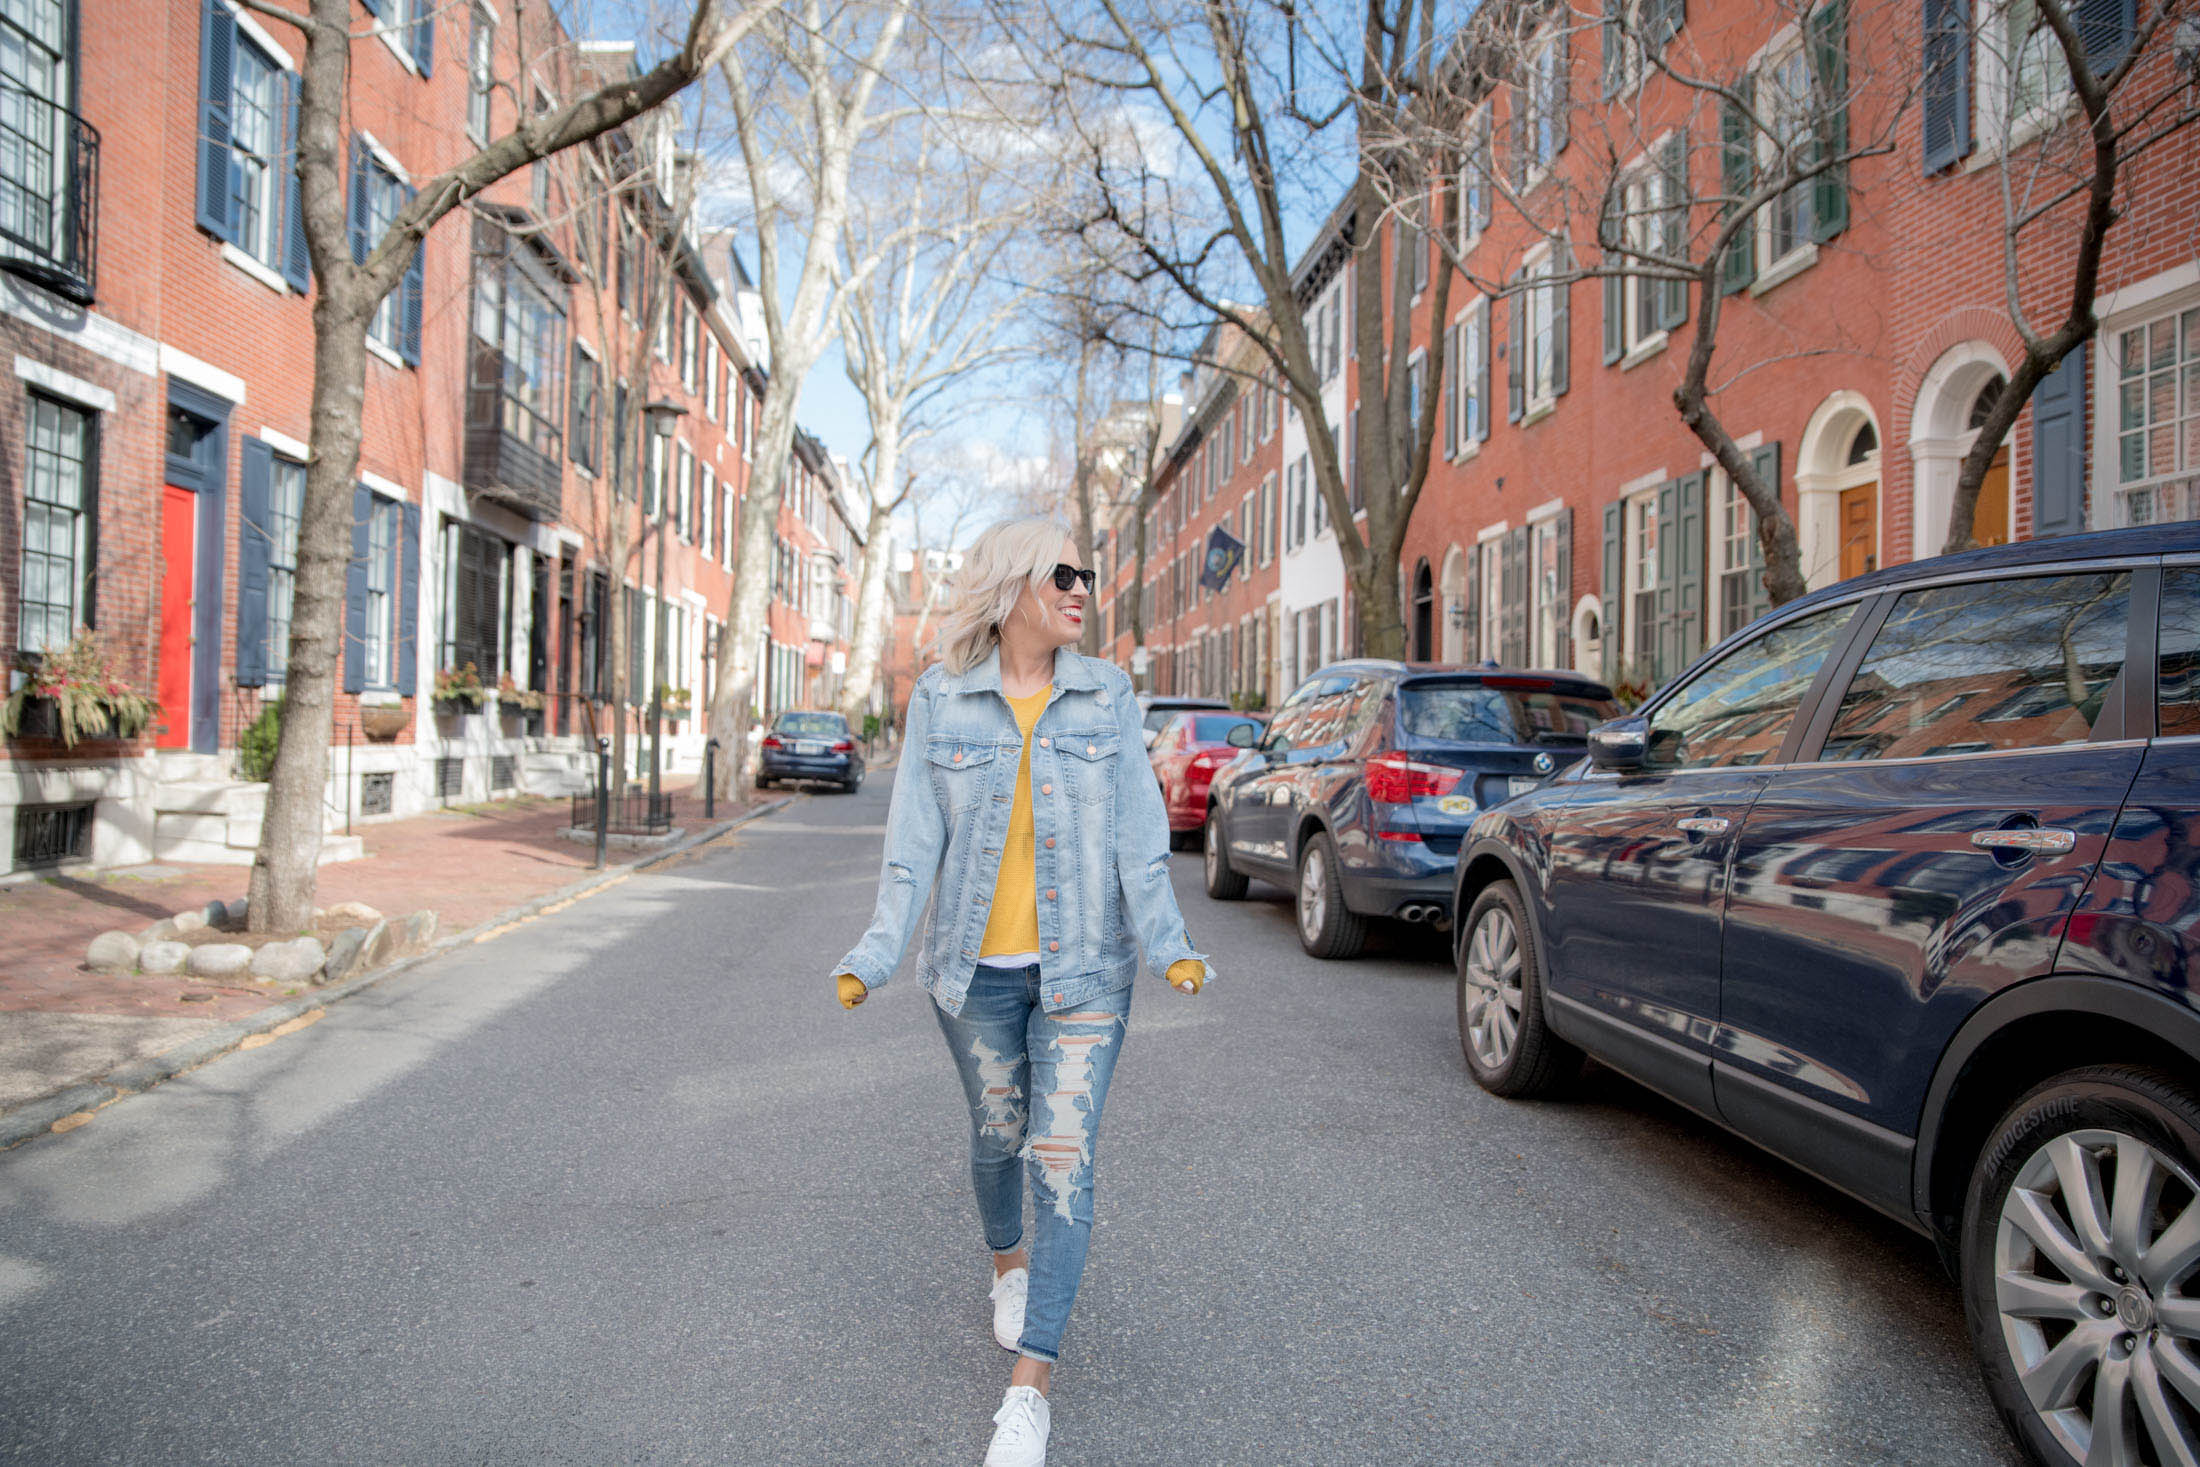 Denim-on-denim. Can't go wrong for a laid-back look, especially when the temps are changing. A jean jacket, a pop of color...here's how we're styling it.